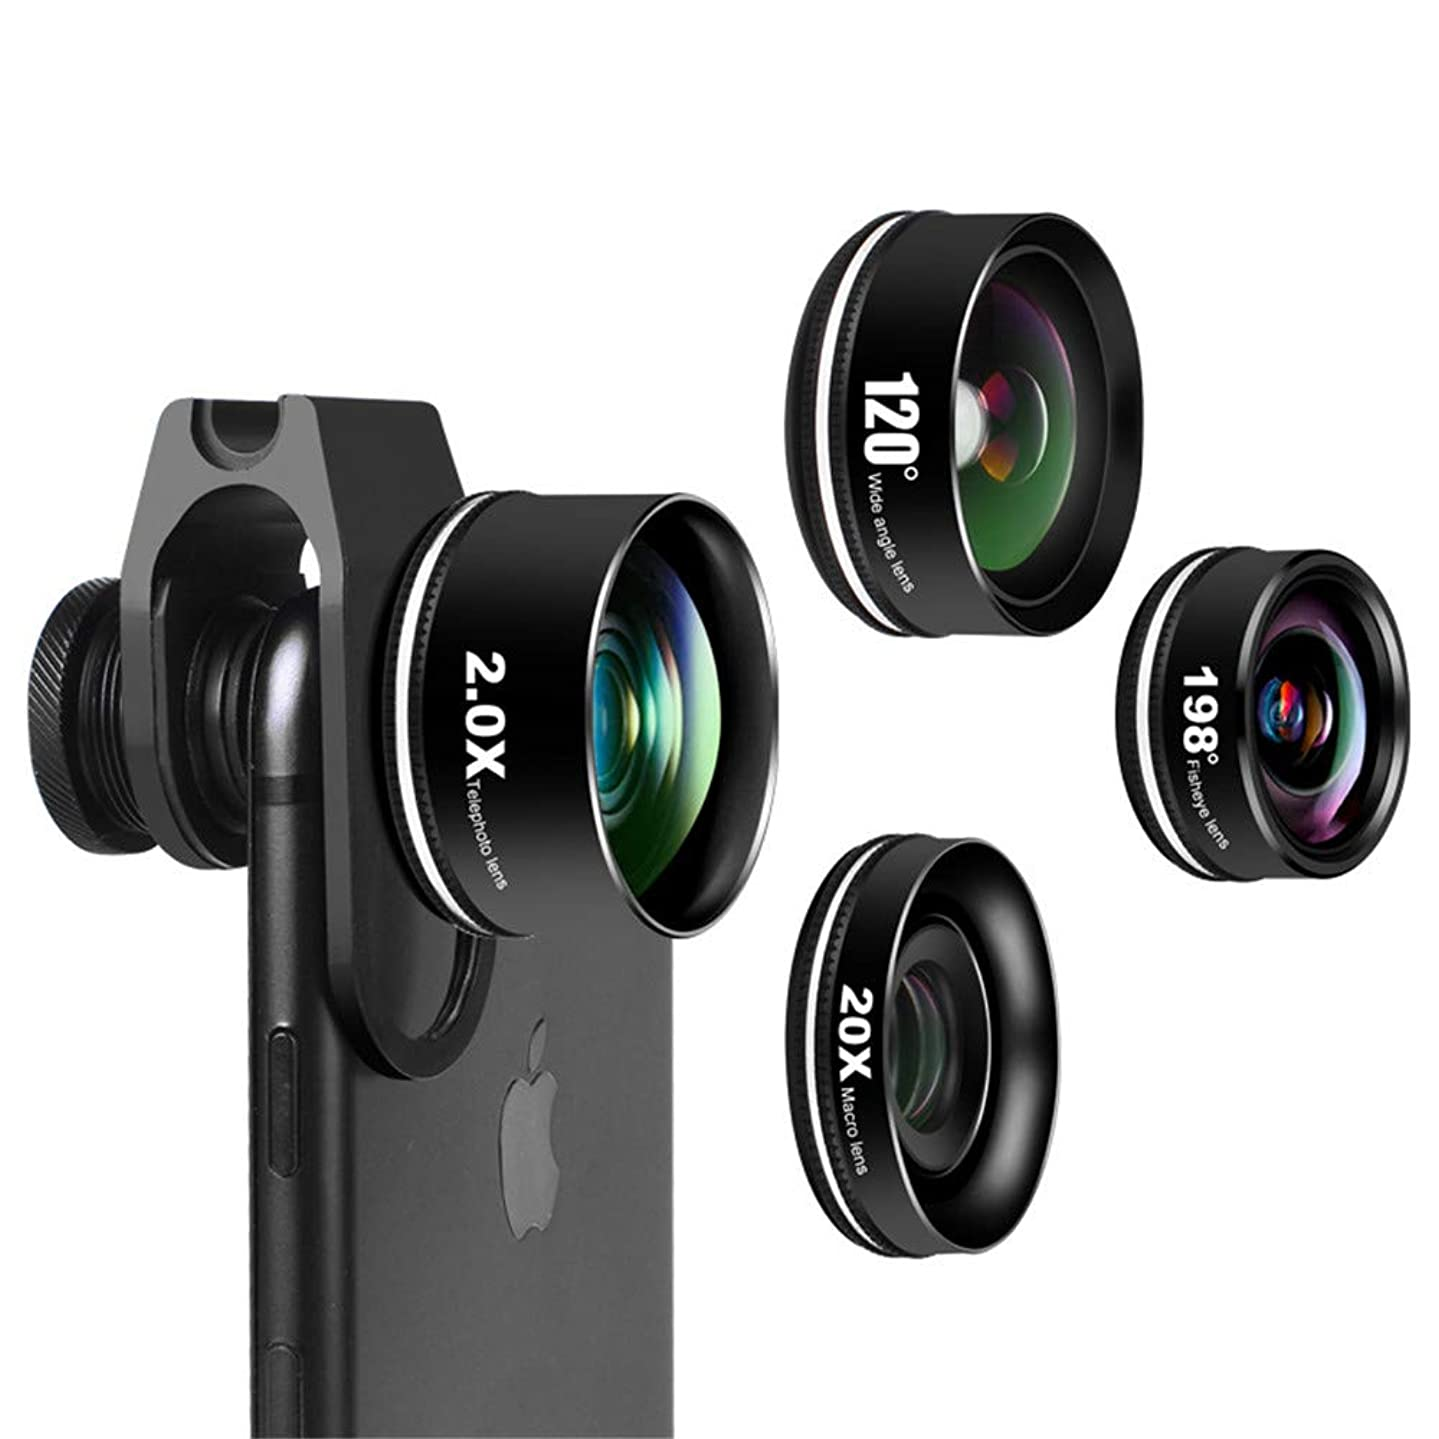 Four Cell Phone Lens,Wide Angle Lens, Macro Lens, Fisheye Lens,or iPhone X/8/7/6/6s Plus Samsung Android & Phone